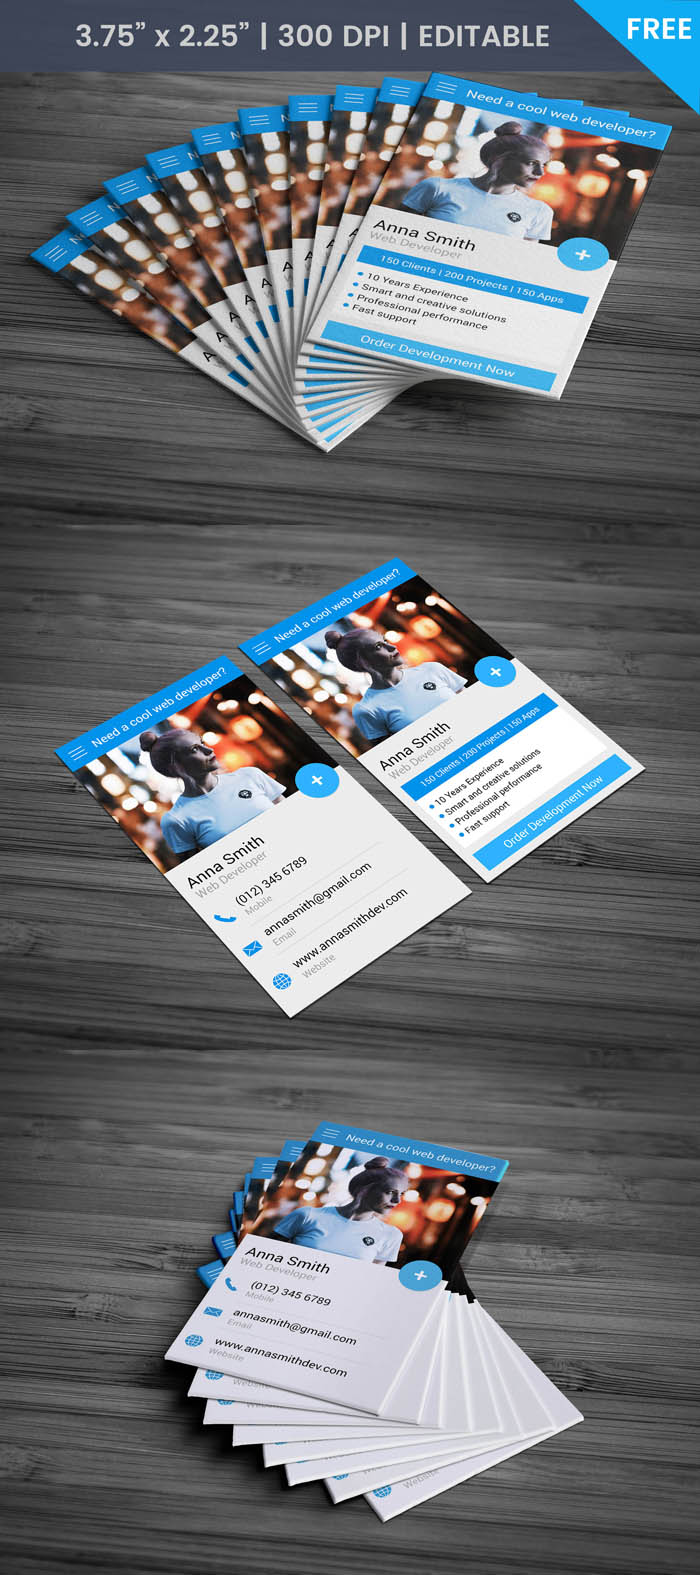 Webmaster Business Card - Full Preview